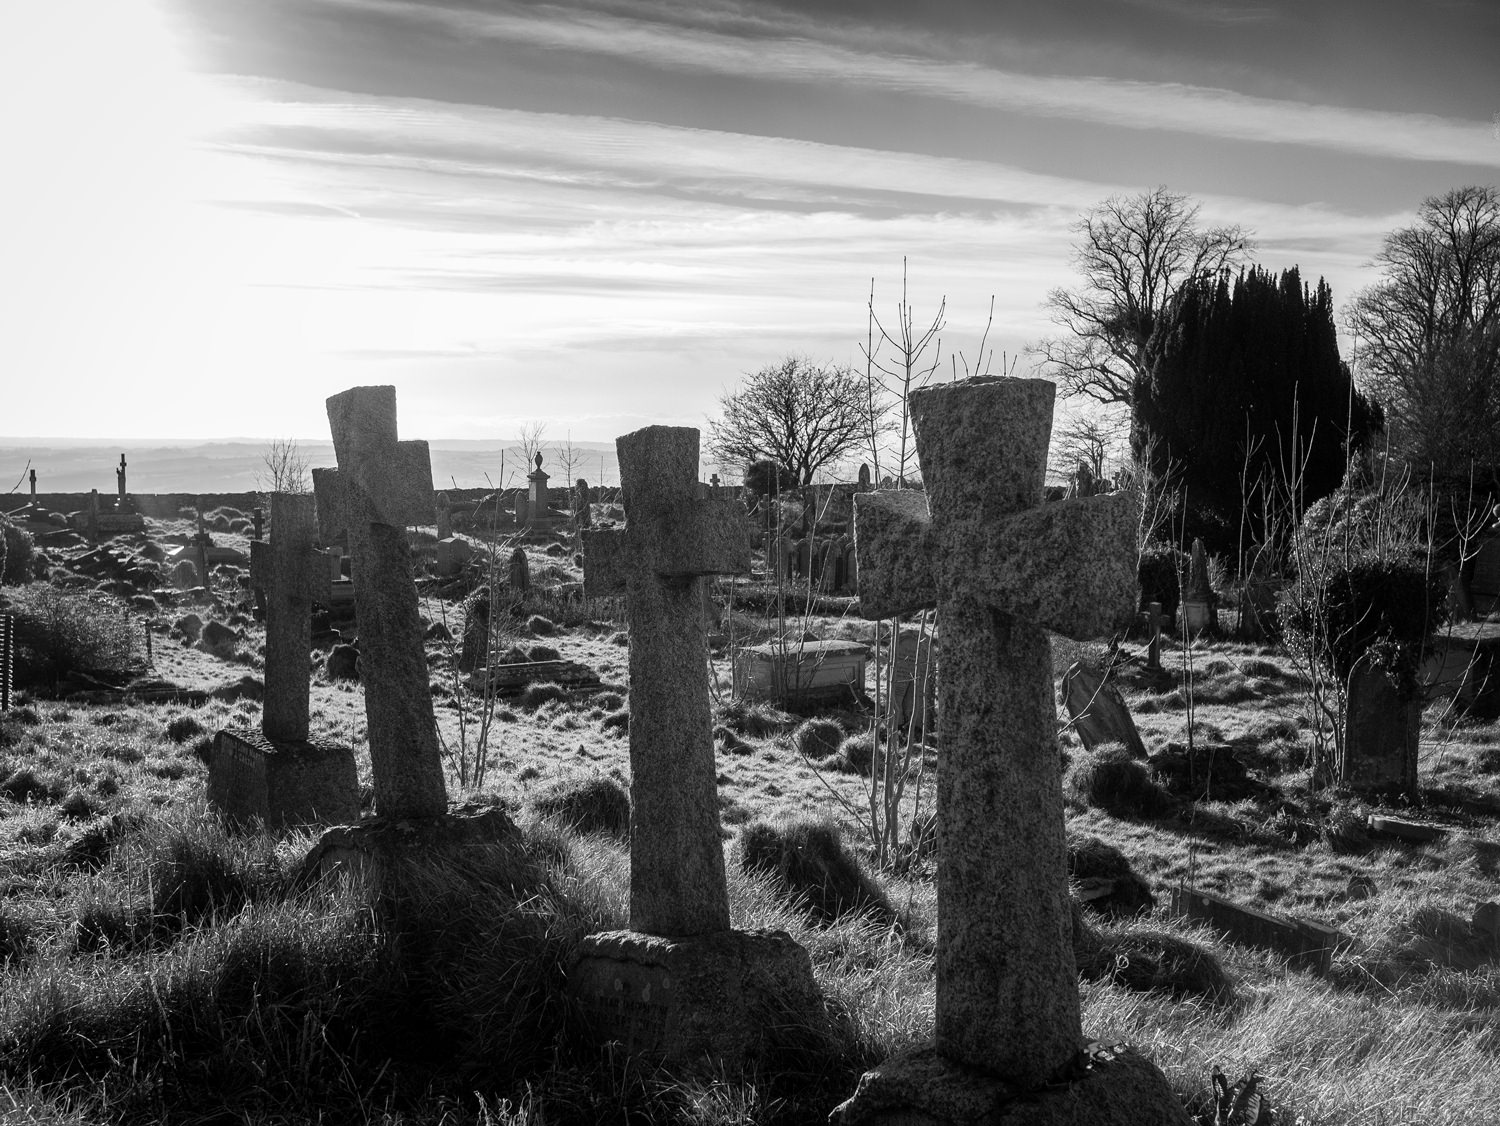 Looking across Lansdown cemetery. In the foreground are three graves with near-identical, plain stone crosses